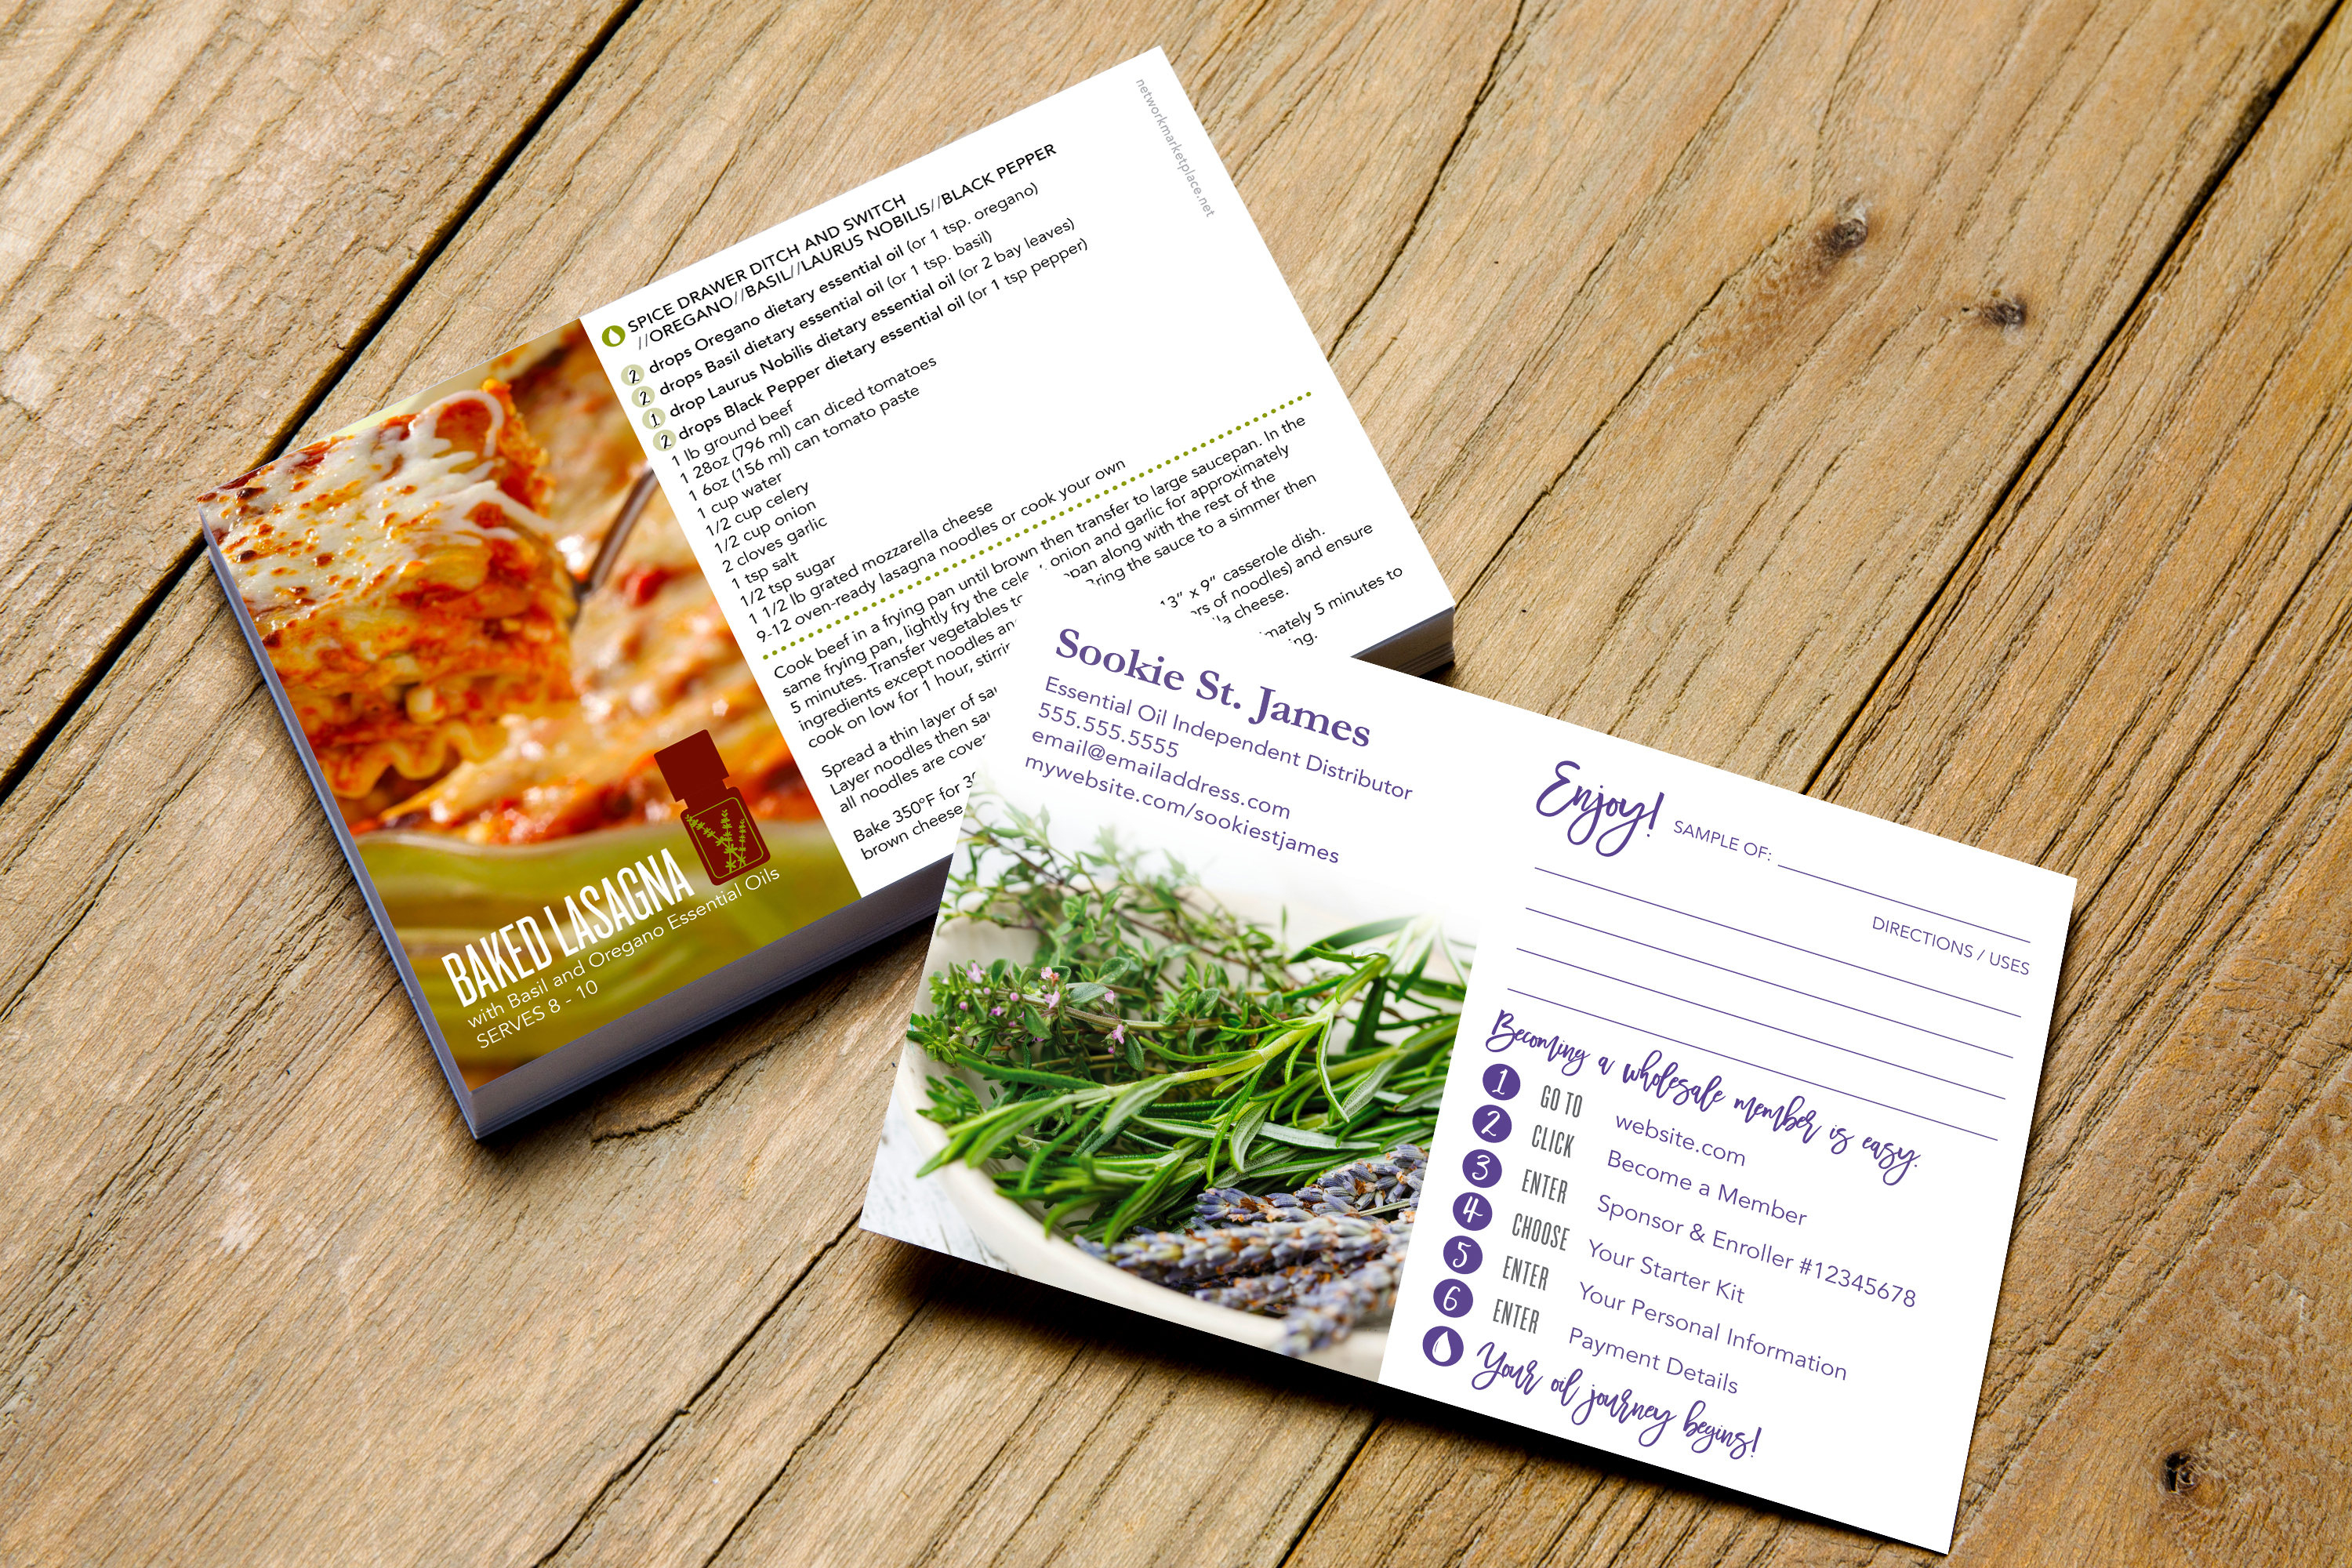 Essential Oils Marketing Personalized Sample Card W/ | Etsy - Free Printable Doterra Sample Cards